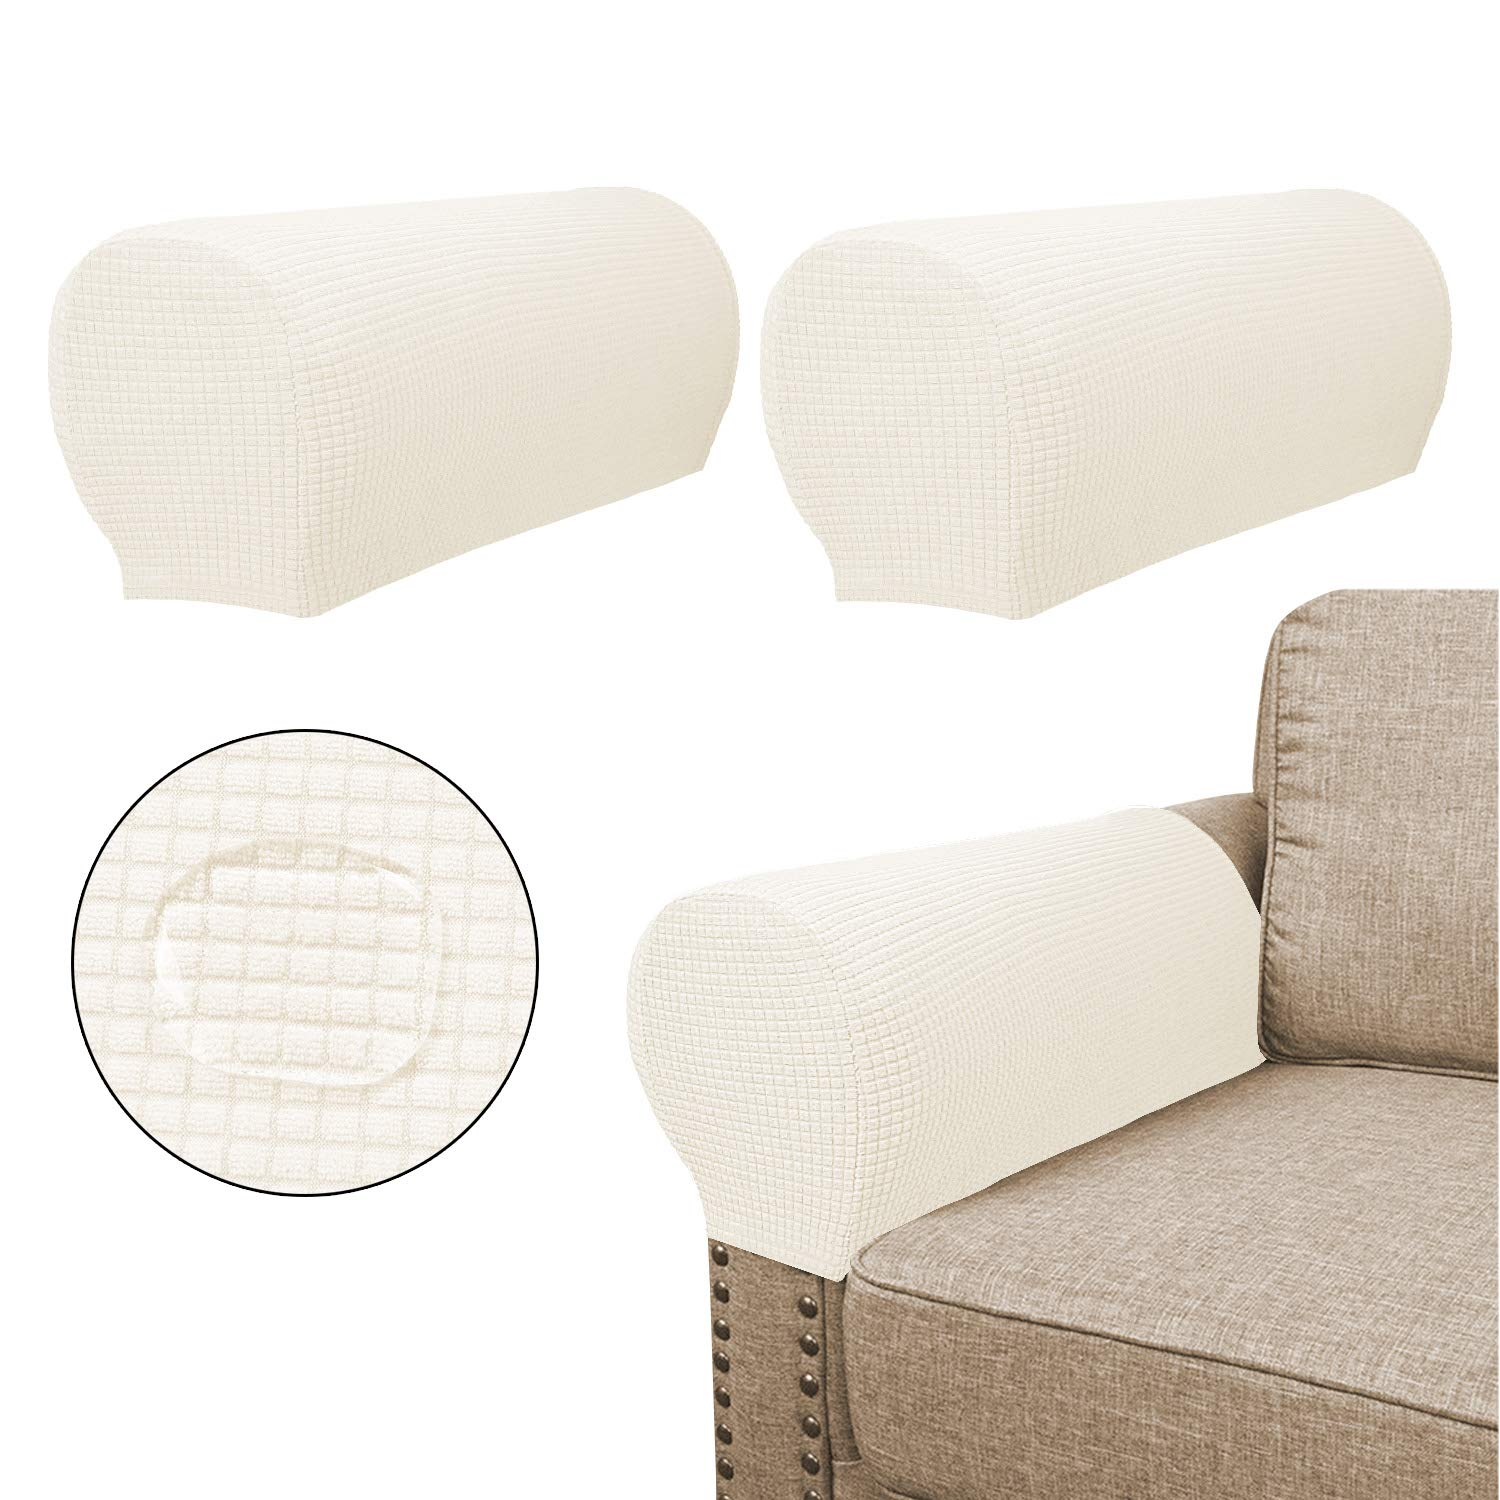 Terrific Sofa Armrest Covers 2 Pieces Set Water Repellent Anti Slip High Stretch Knitted Jacquard Couch Arm Slipcover Protector Shield For Dog Cat Alphanode Cool Chair Designs And Ideas Alphanodeonline